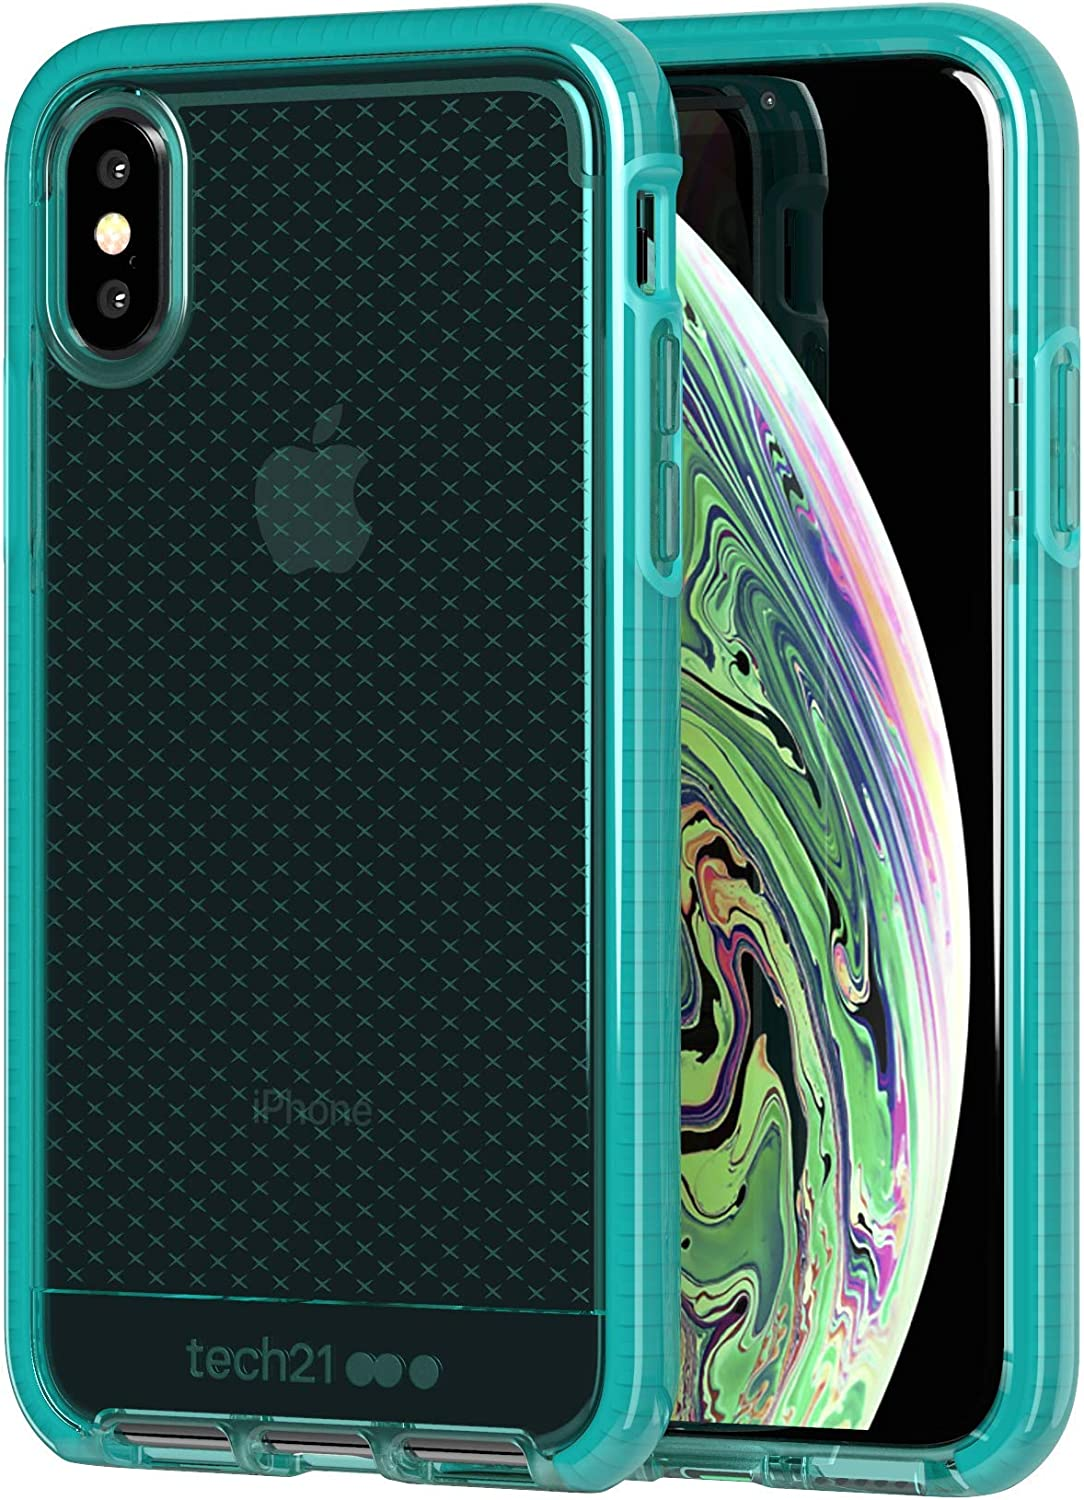 tech21 Evo Check for Apple iPhone X and XS Phone Case with 12 ft. Drop Protection - Vert (T21-6172)